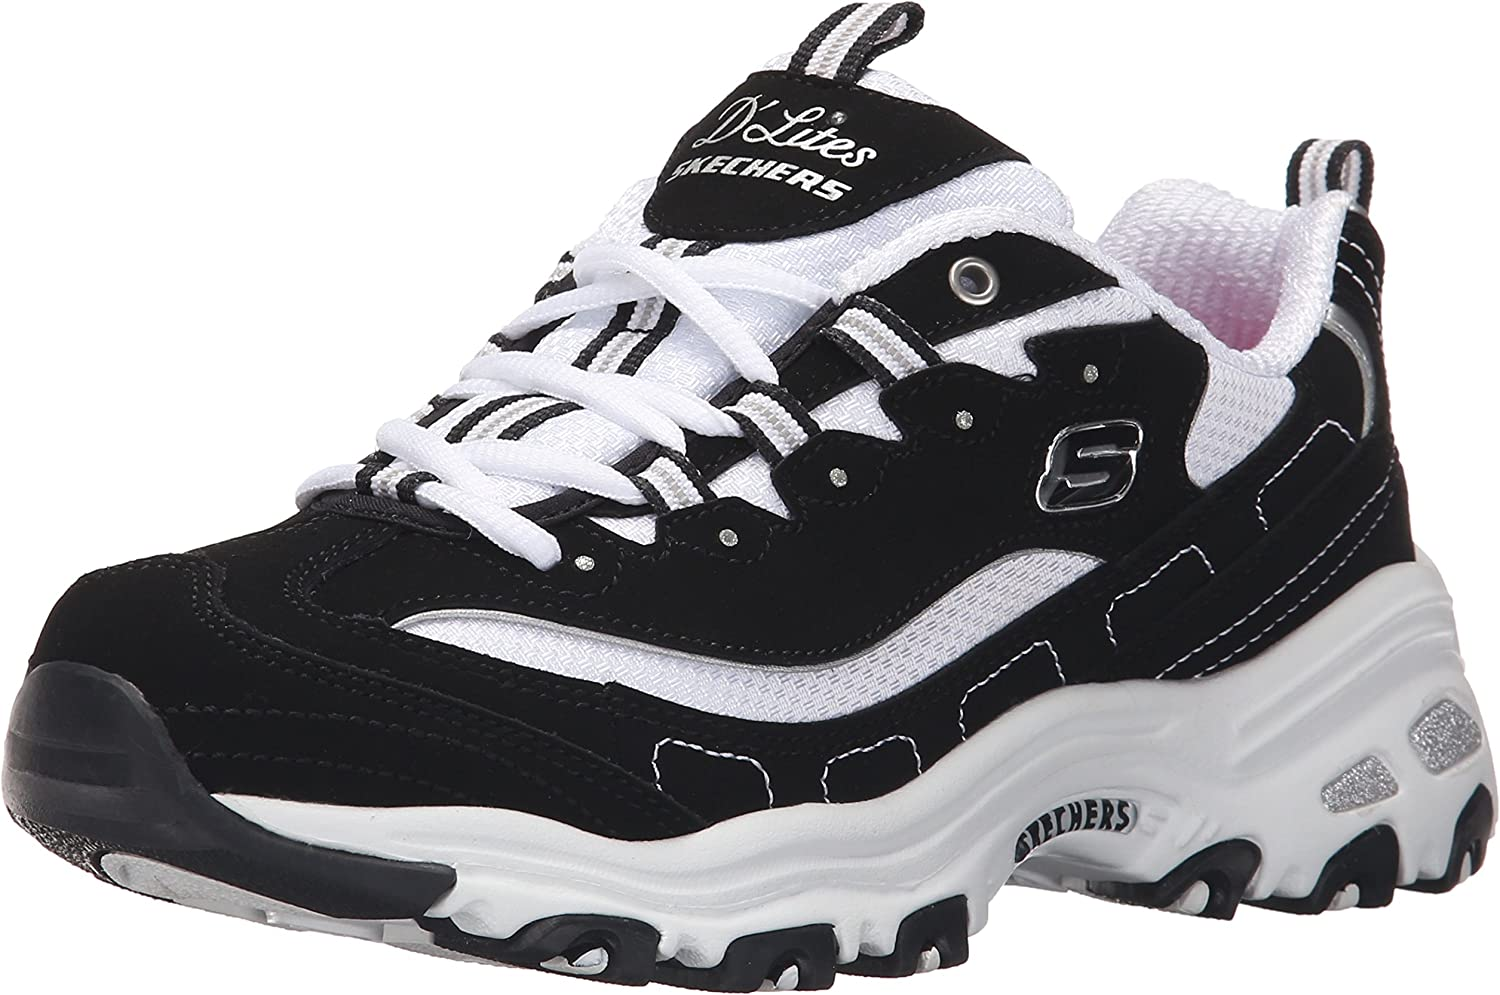 Skechers Women's D'Lites - Biggest Fan Sneakers